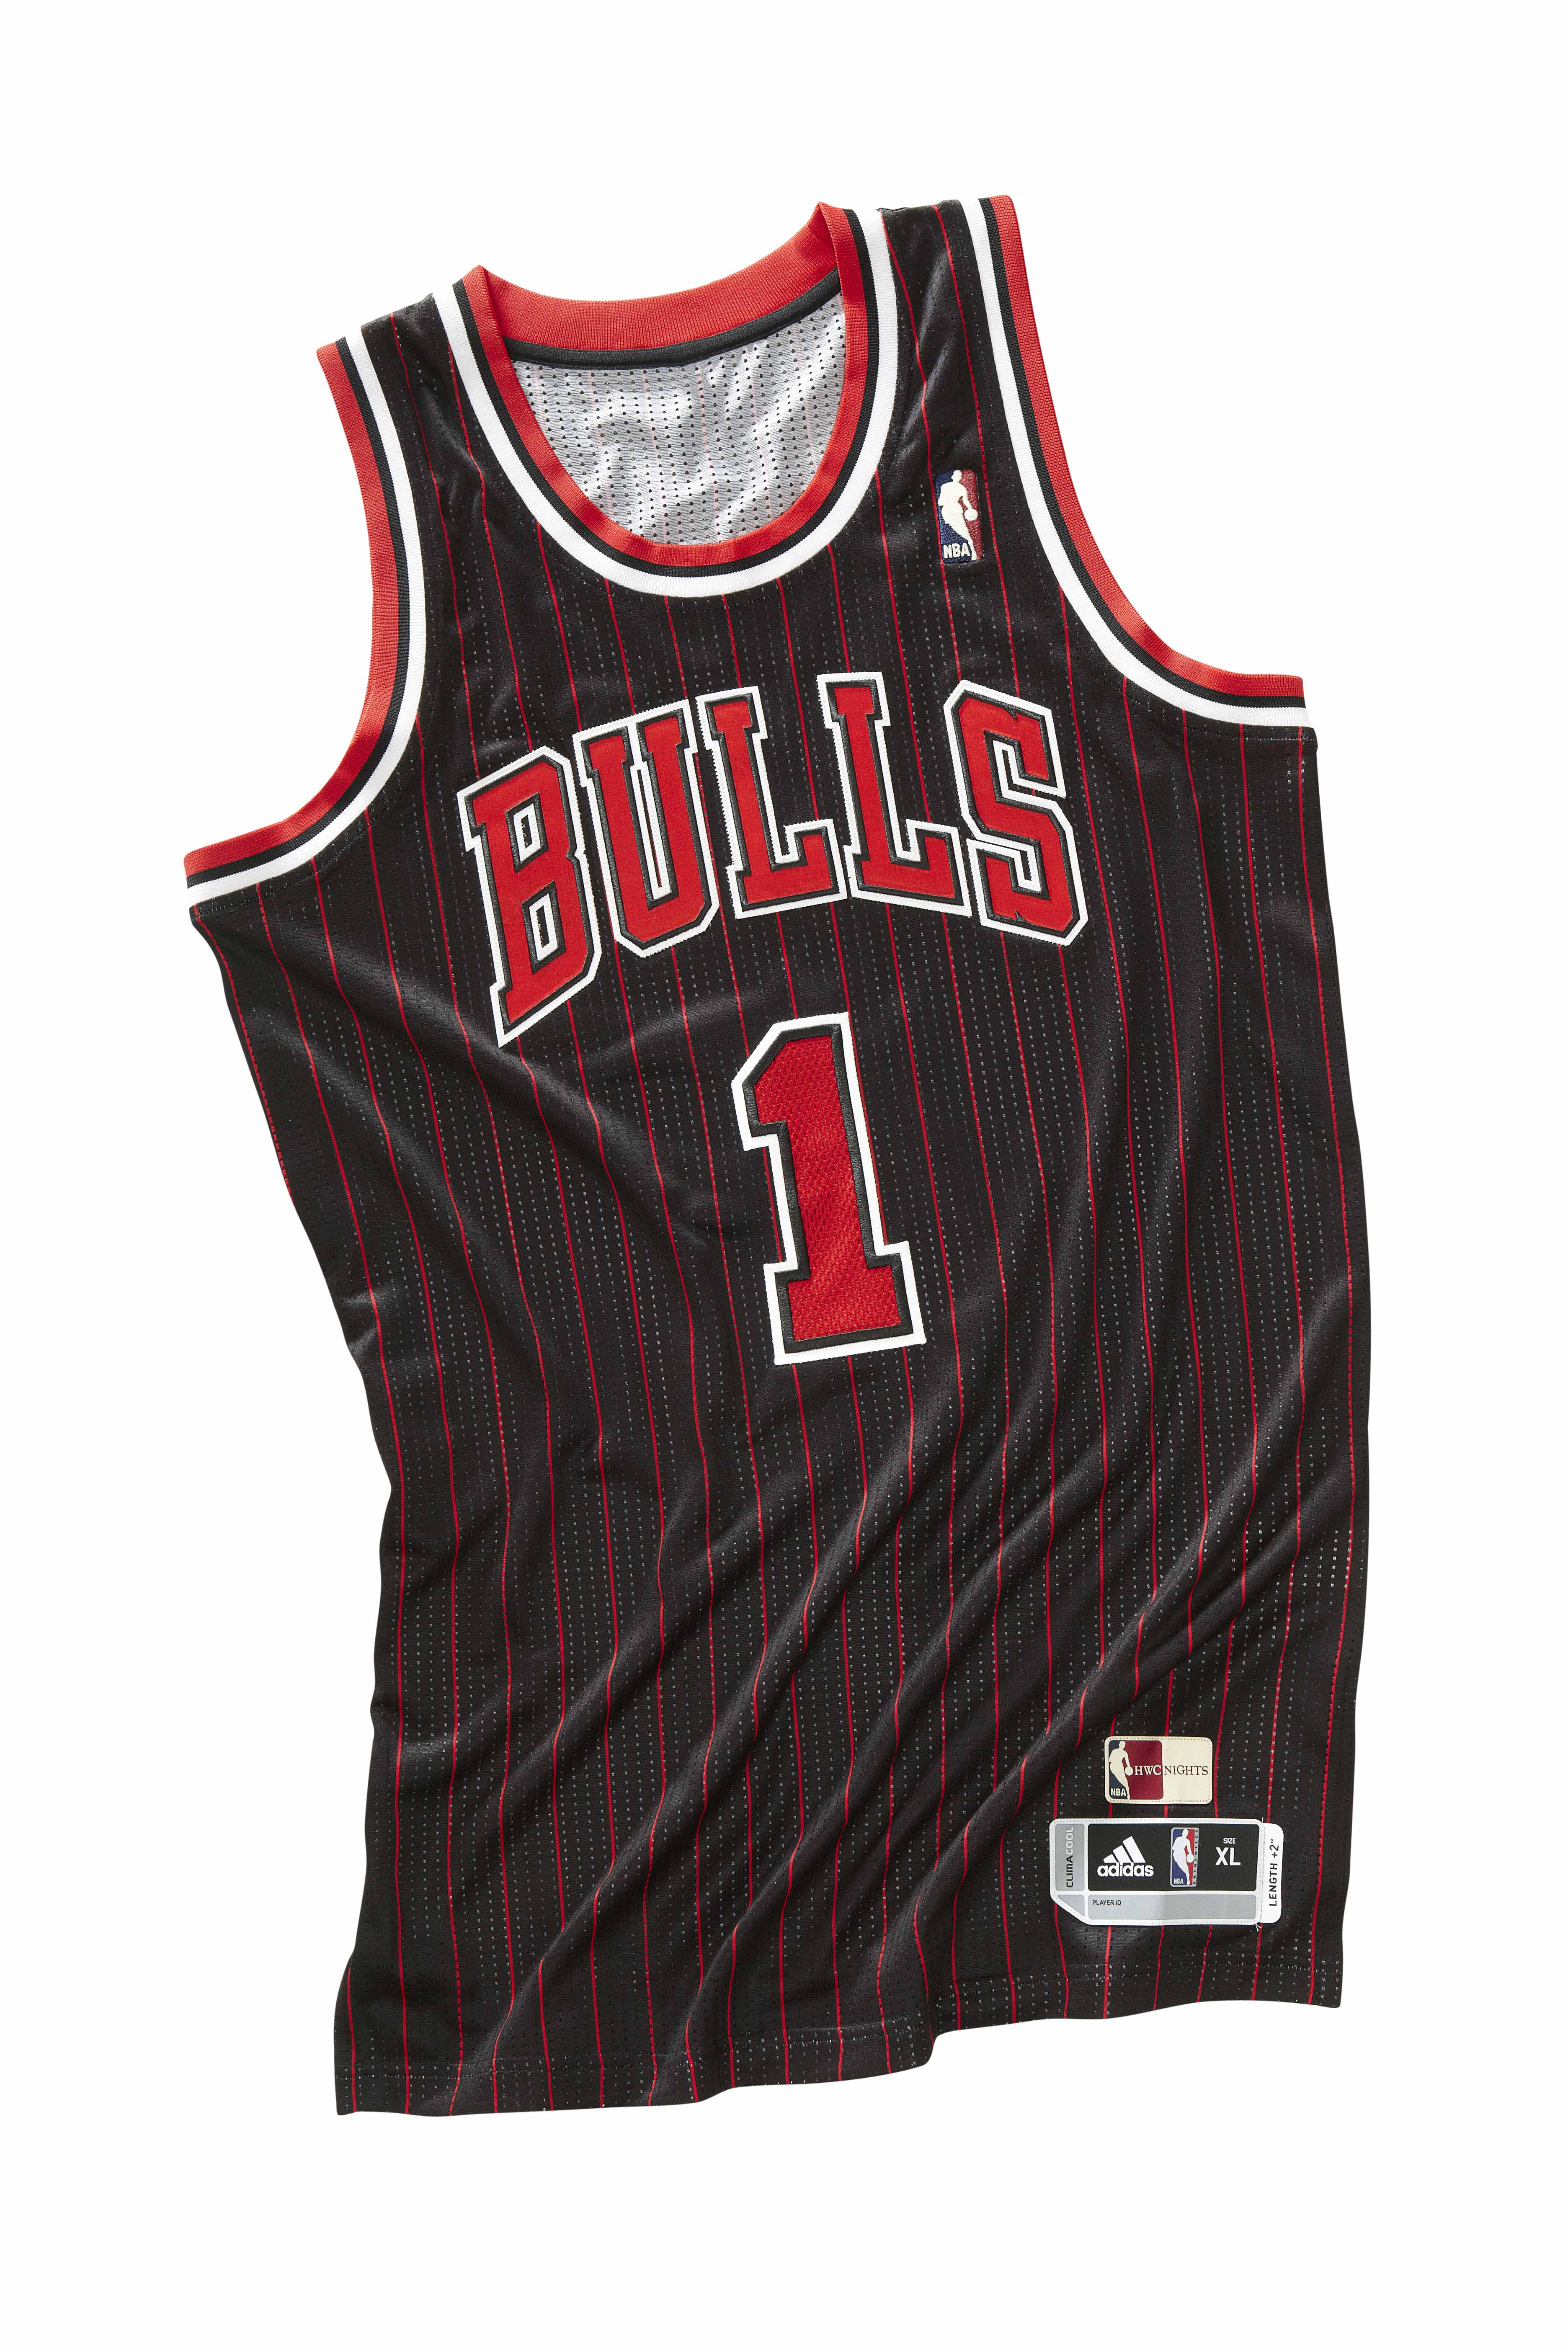 NBA Hardwood Classics - Chicago Bulls